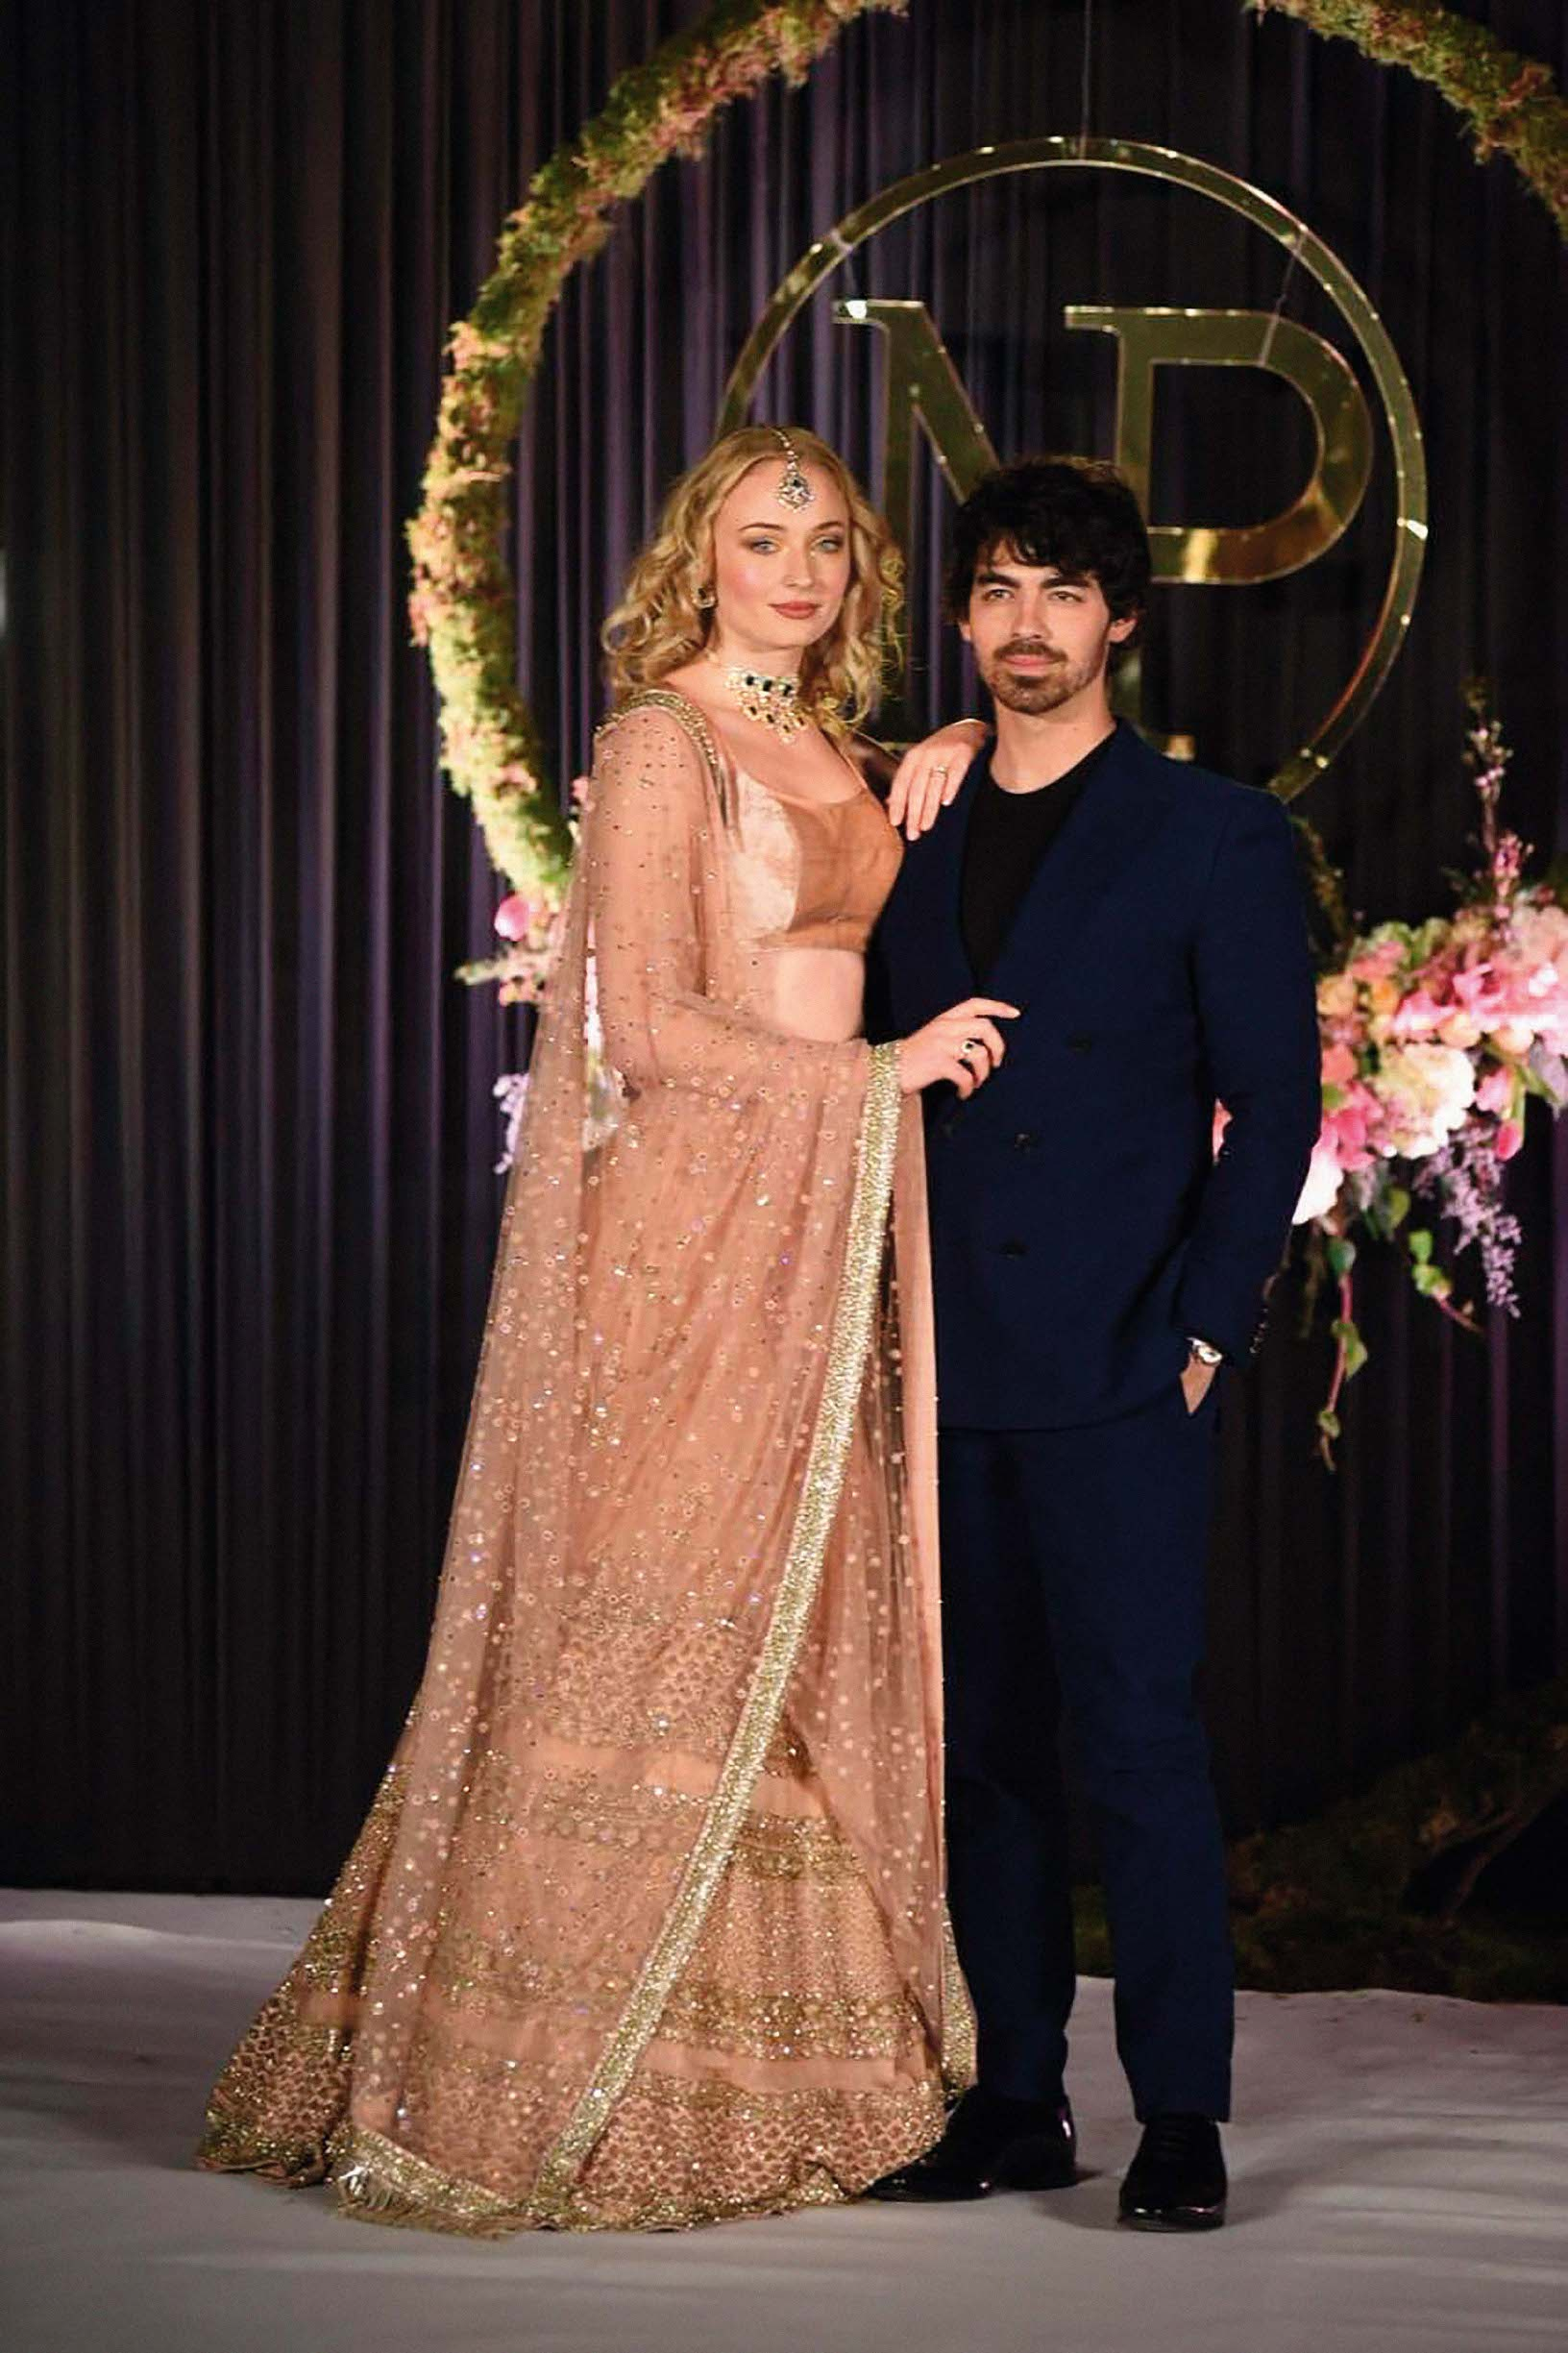 Nick Jonas and Priyanka Chopra are seen having another marriage ceremony in Delhi, India. The couple were joined by friend and family including Joe Jonas and his girlfriend Sophie Turner. 04 Dec 2018, Image: 400336849, License: Rights-managed, Restrictions: World Rights, Model Release: no, Credit line: Profimedia, Mega Agency